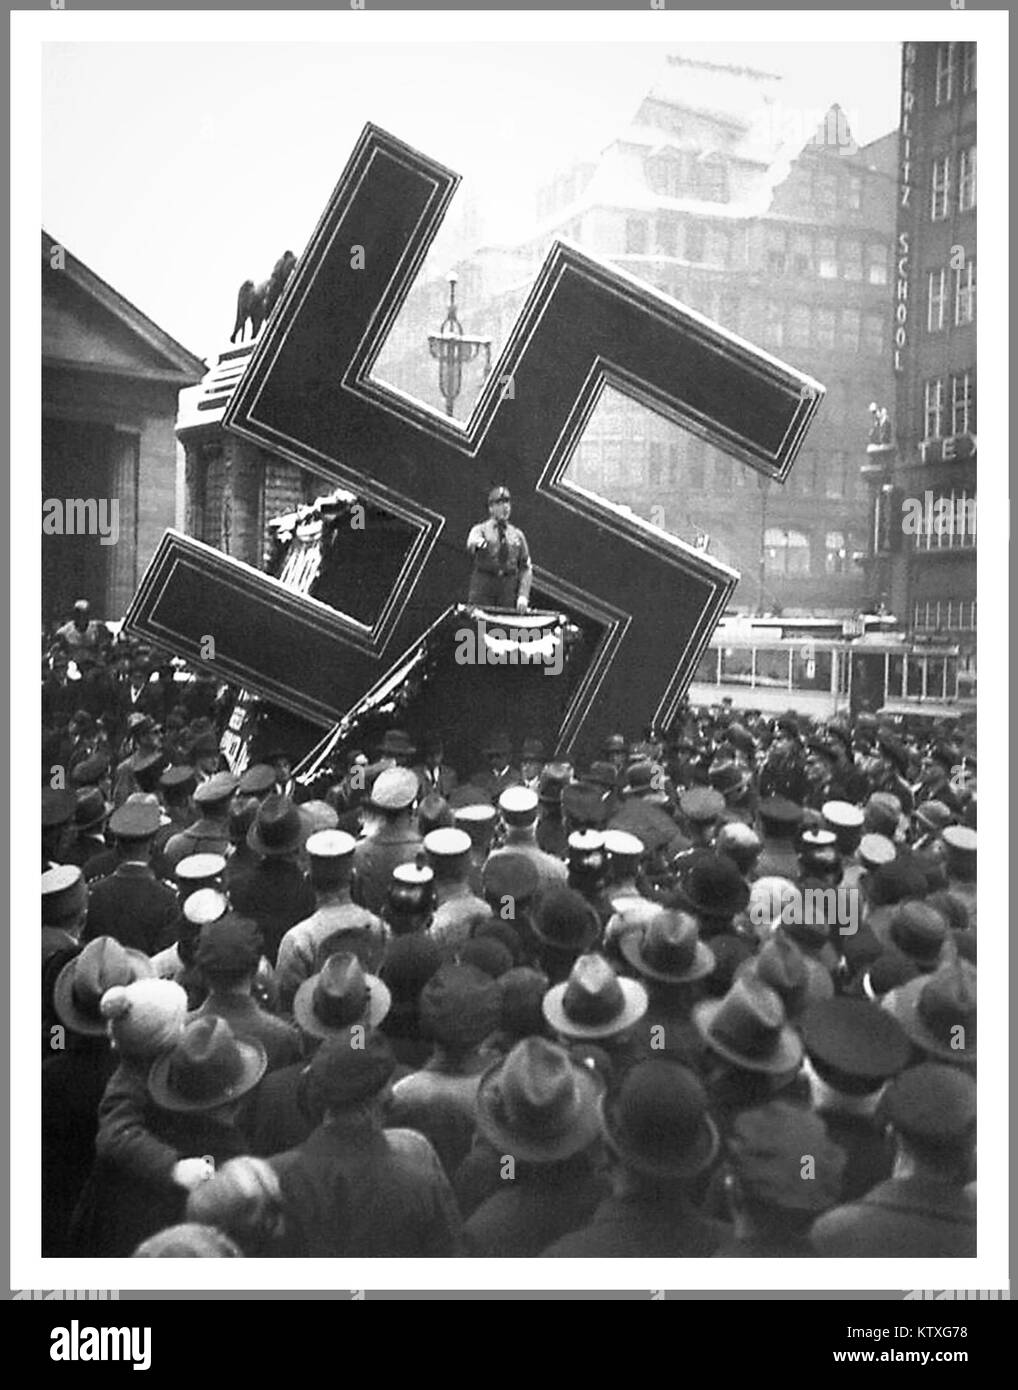 Pre-War Nazi rally using the Swastika as a gigantic mobile prop, as here in a photograph taken in Hamburg Germany - Stock Image